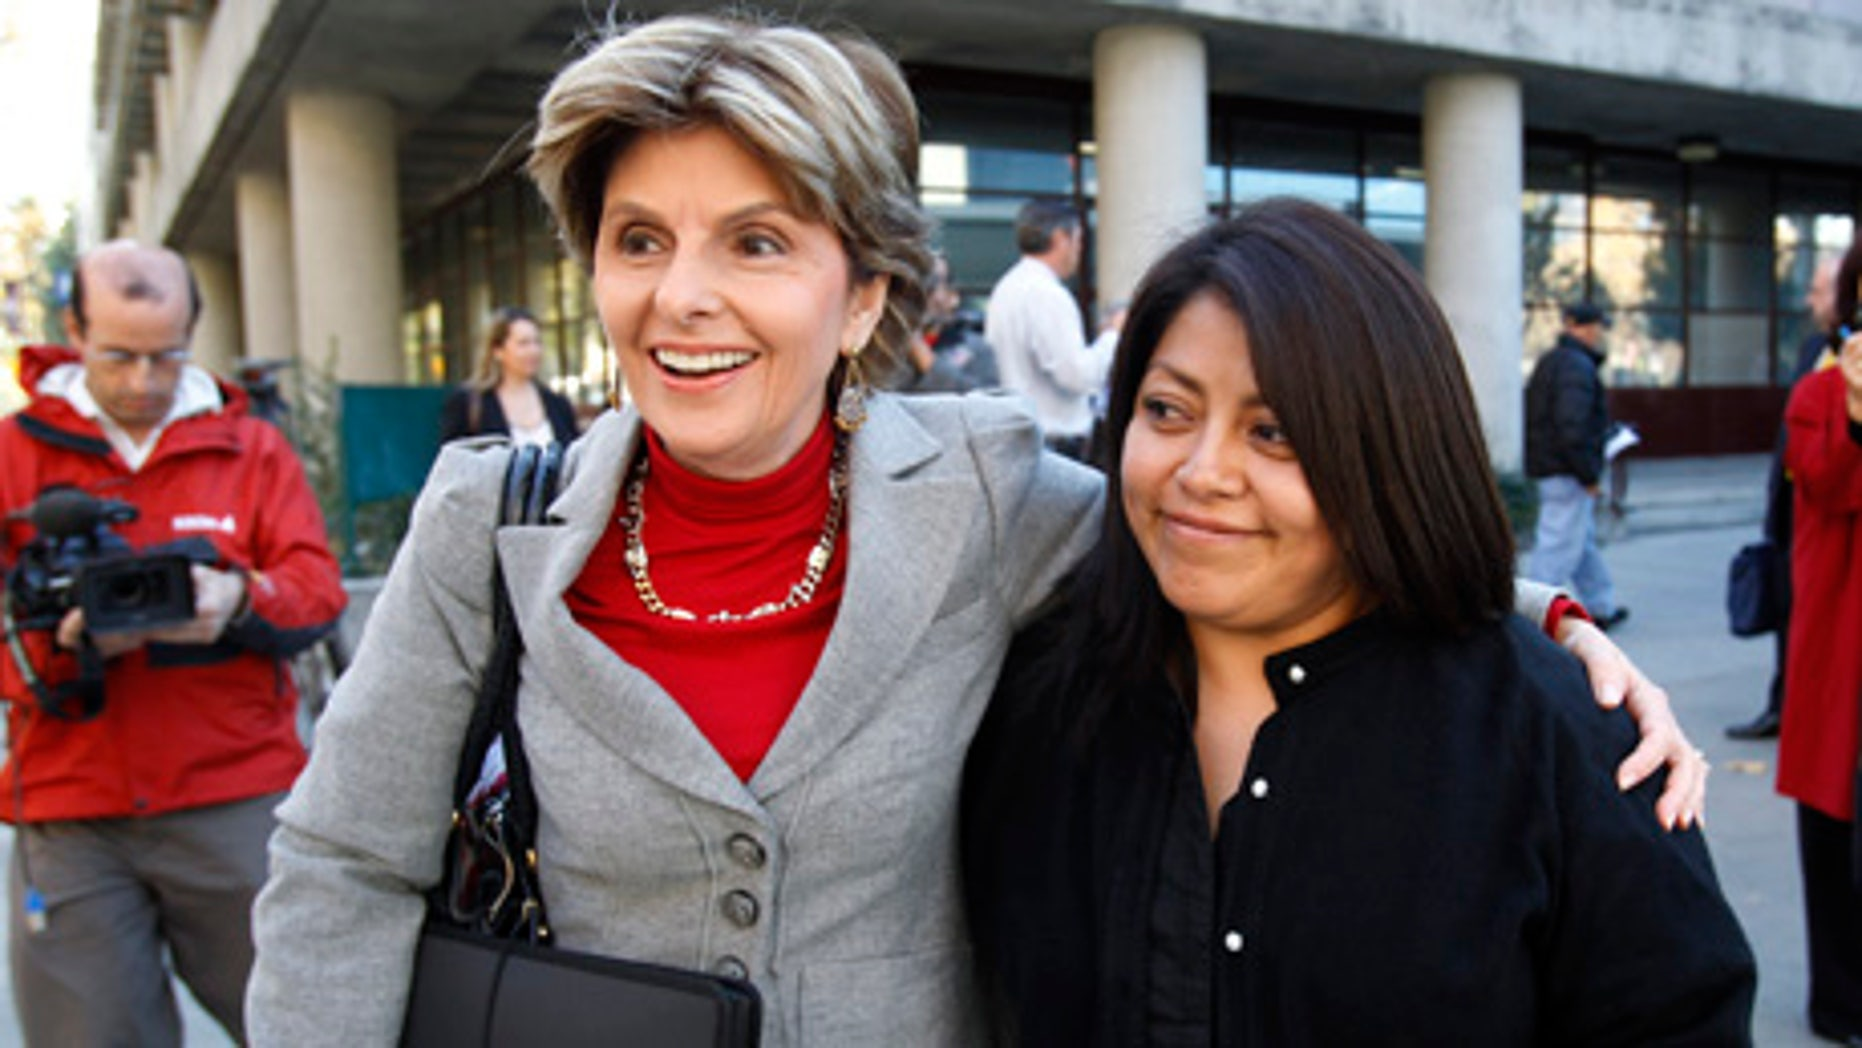 Nicky Diaz Santillan, right, and her attorney Gloria Allred, left, smile as they leave a hearing in San Jose, Calif., Wednesday, Nov. 17, 2010. Diaz Santillan, the illegal immigrant housekeeper who helped derail Meg Whitman's gubernatorial campaign, took her case before the California Department of Industrial Relations. She claims the former eBay CEO and billionaire owes her $6,210 in unpaid wages and mileage reimbursements accrued during the nine years she spent as the Whitman family's housekeeper. (AP Photo/Paul Sakuma)